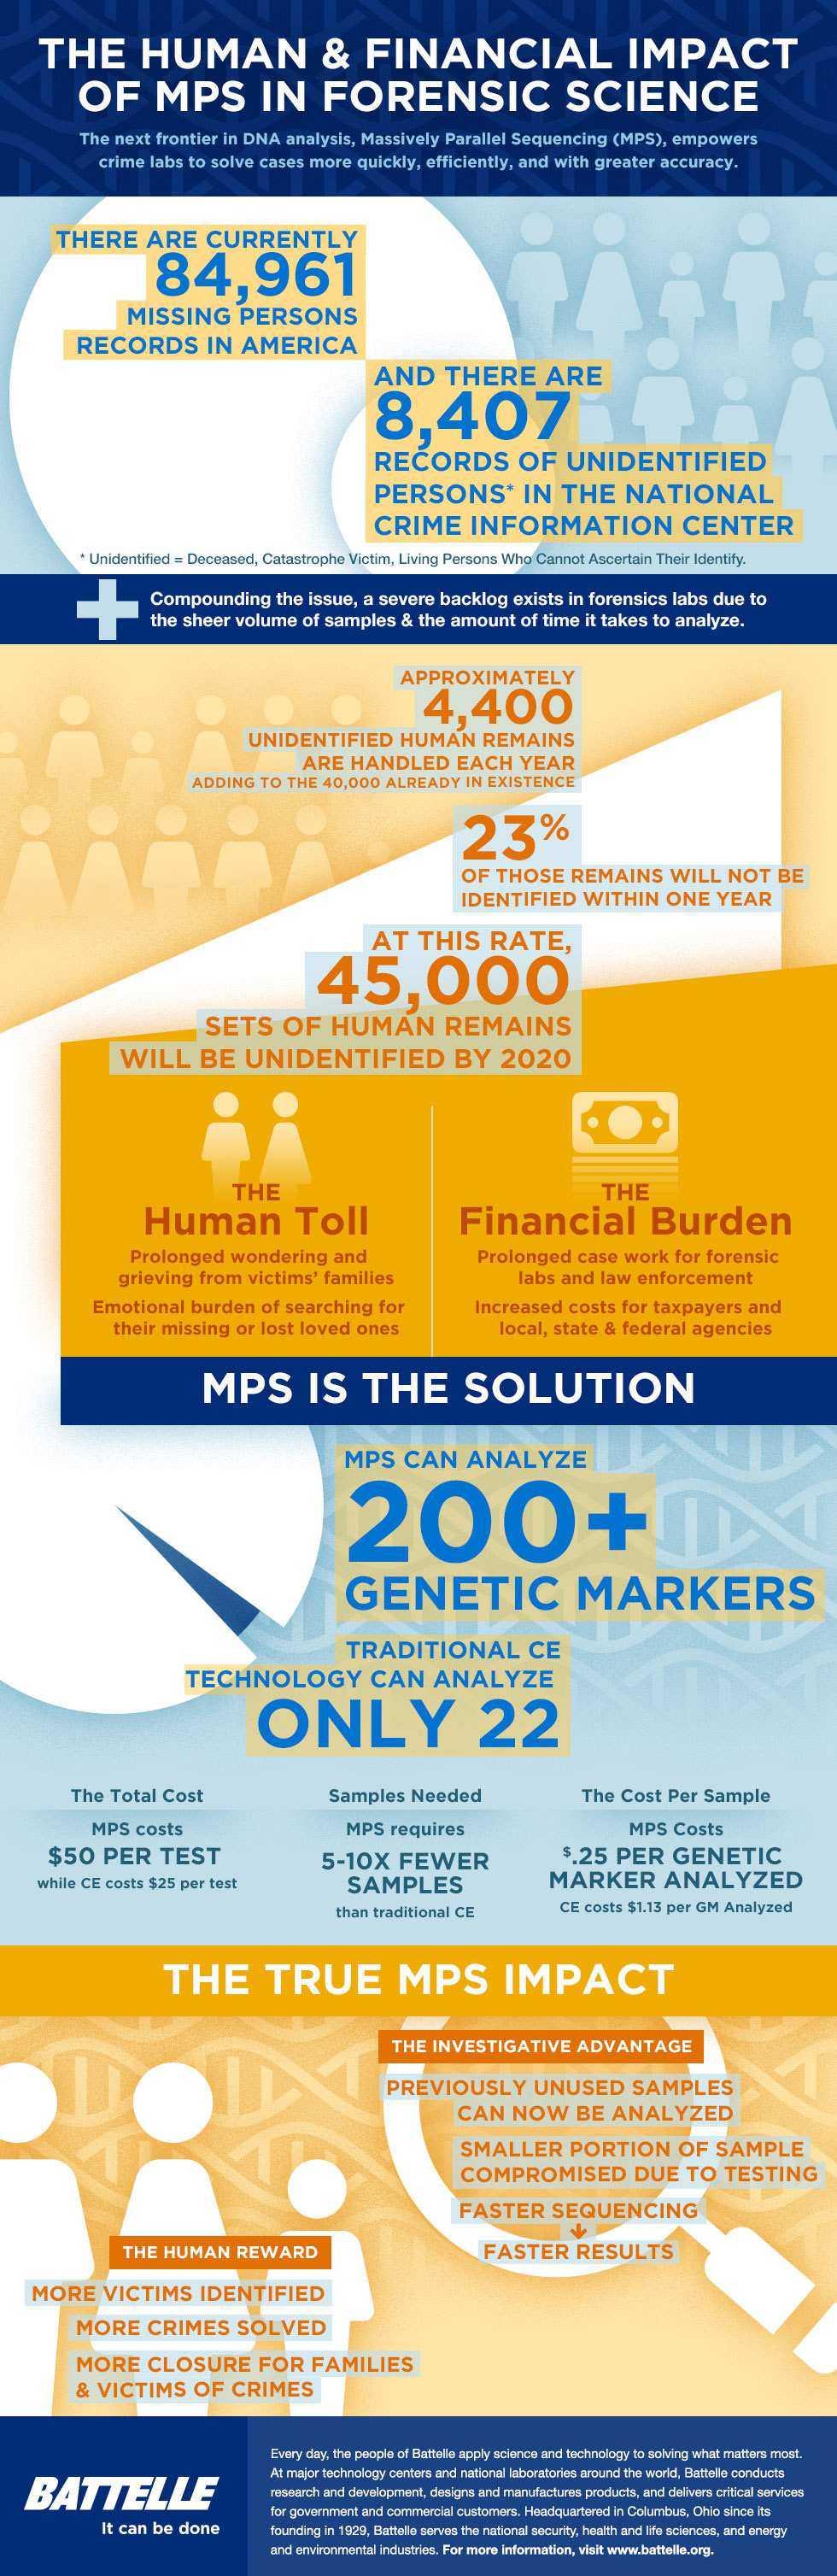 infographic showing the benefits of MPS technology